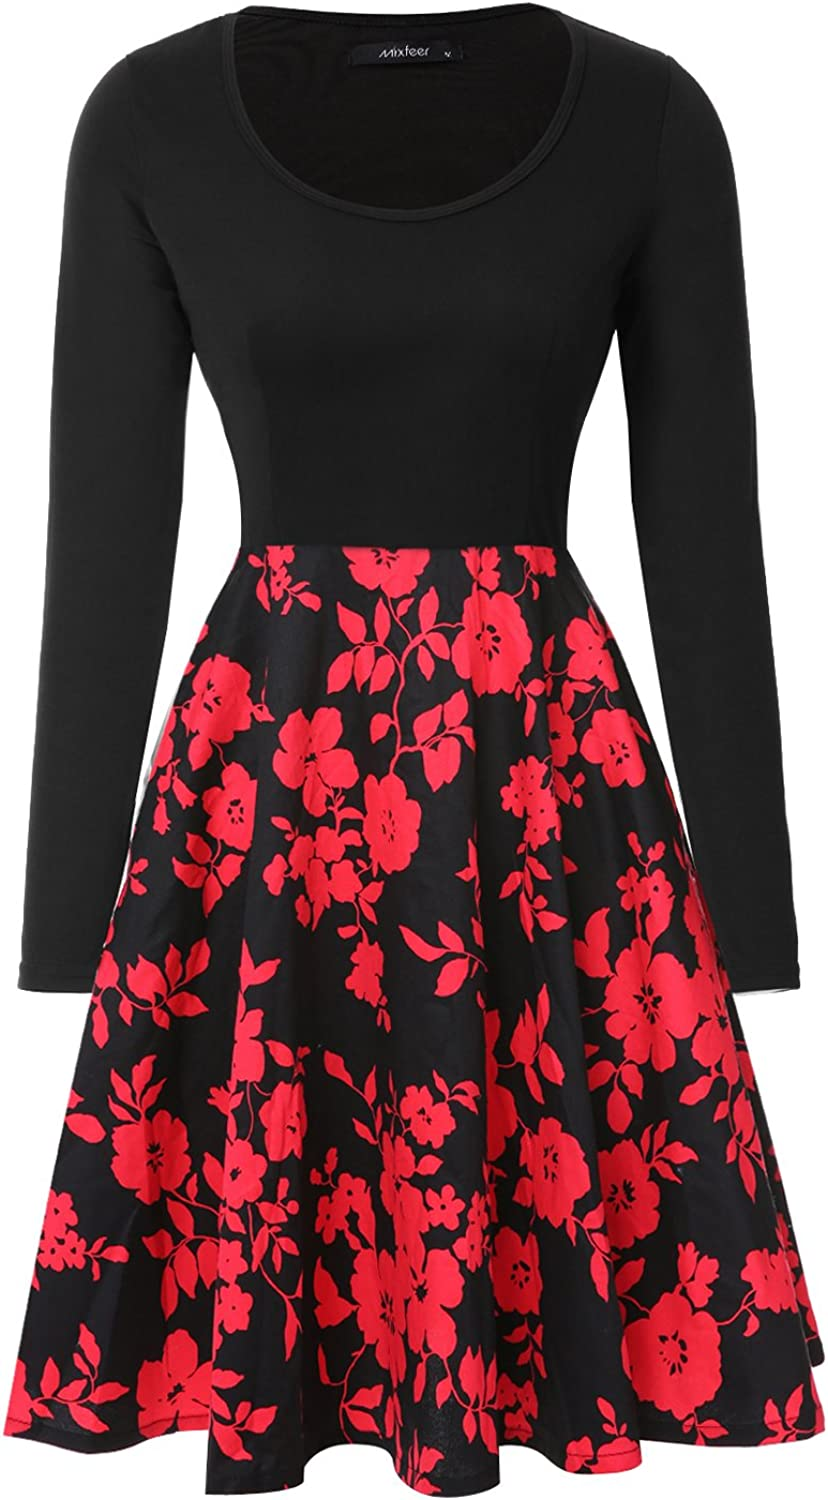 Womens Vintage Midi Dress Floral Long Sleeve A-line Cocktail Party Swing Dress with Pockets